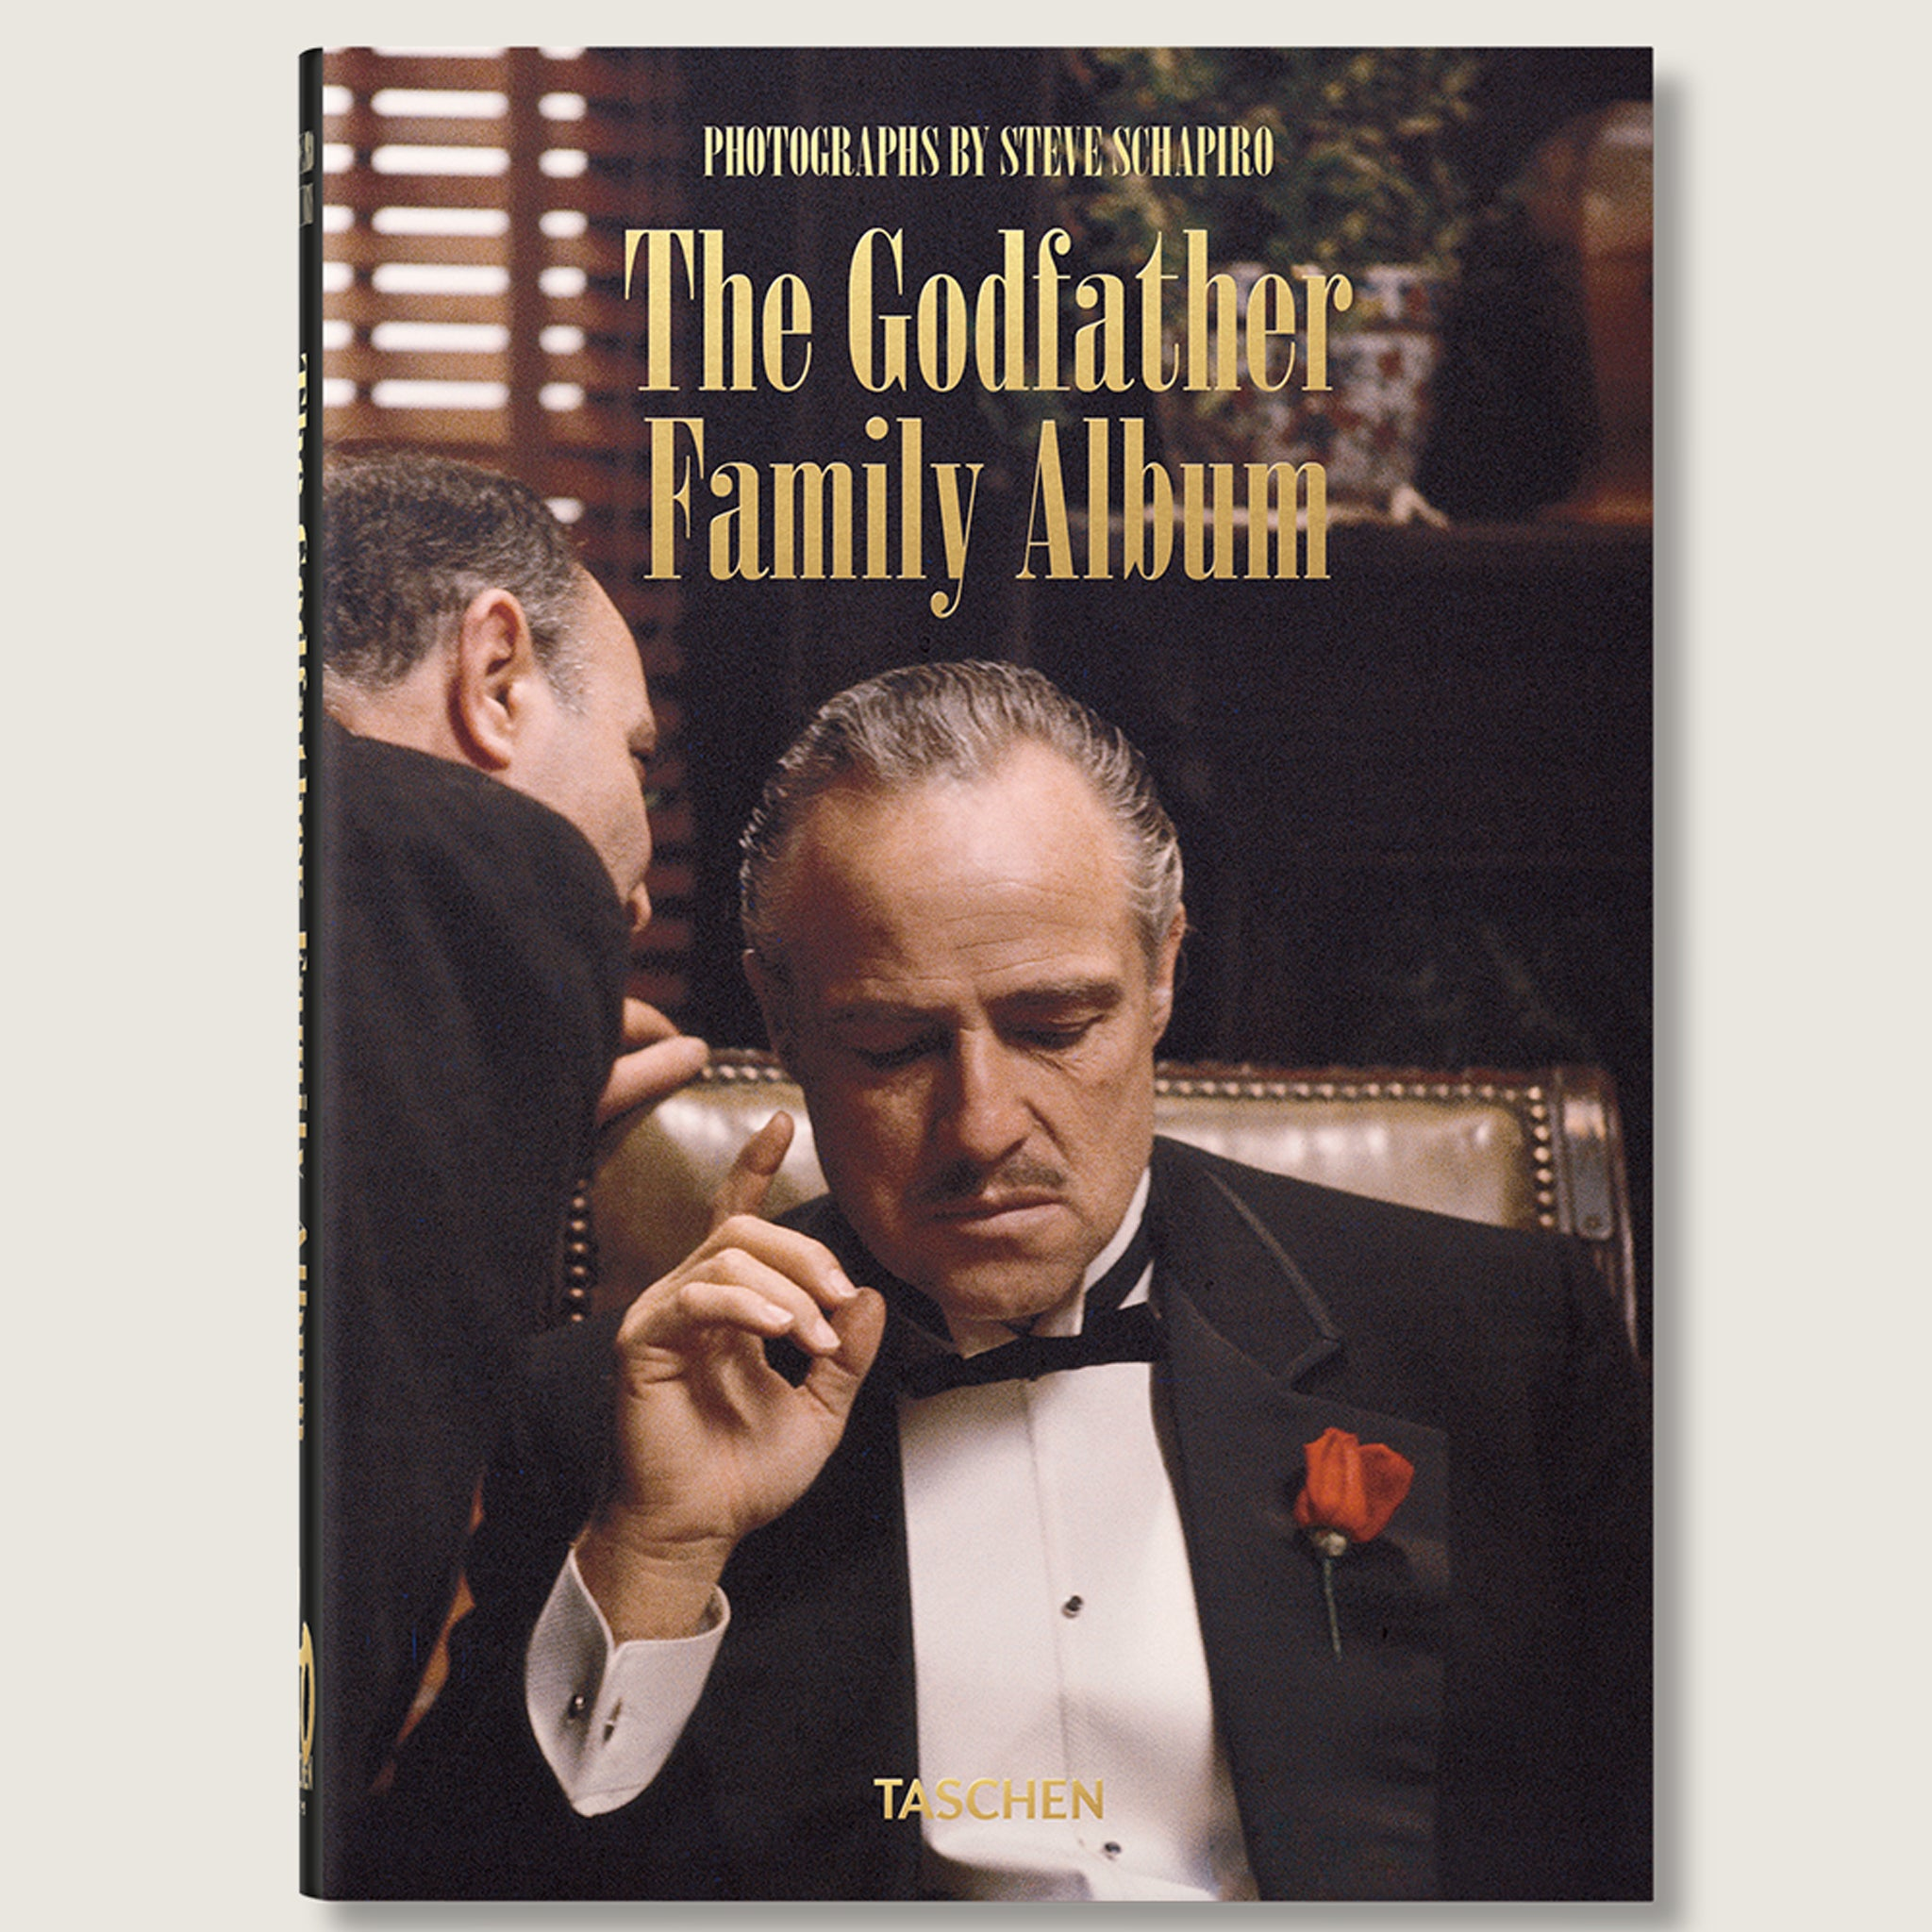 The Godfather Family Album - 40th Anniversary Edition - Blackbird General Store